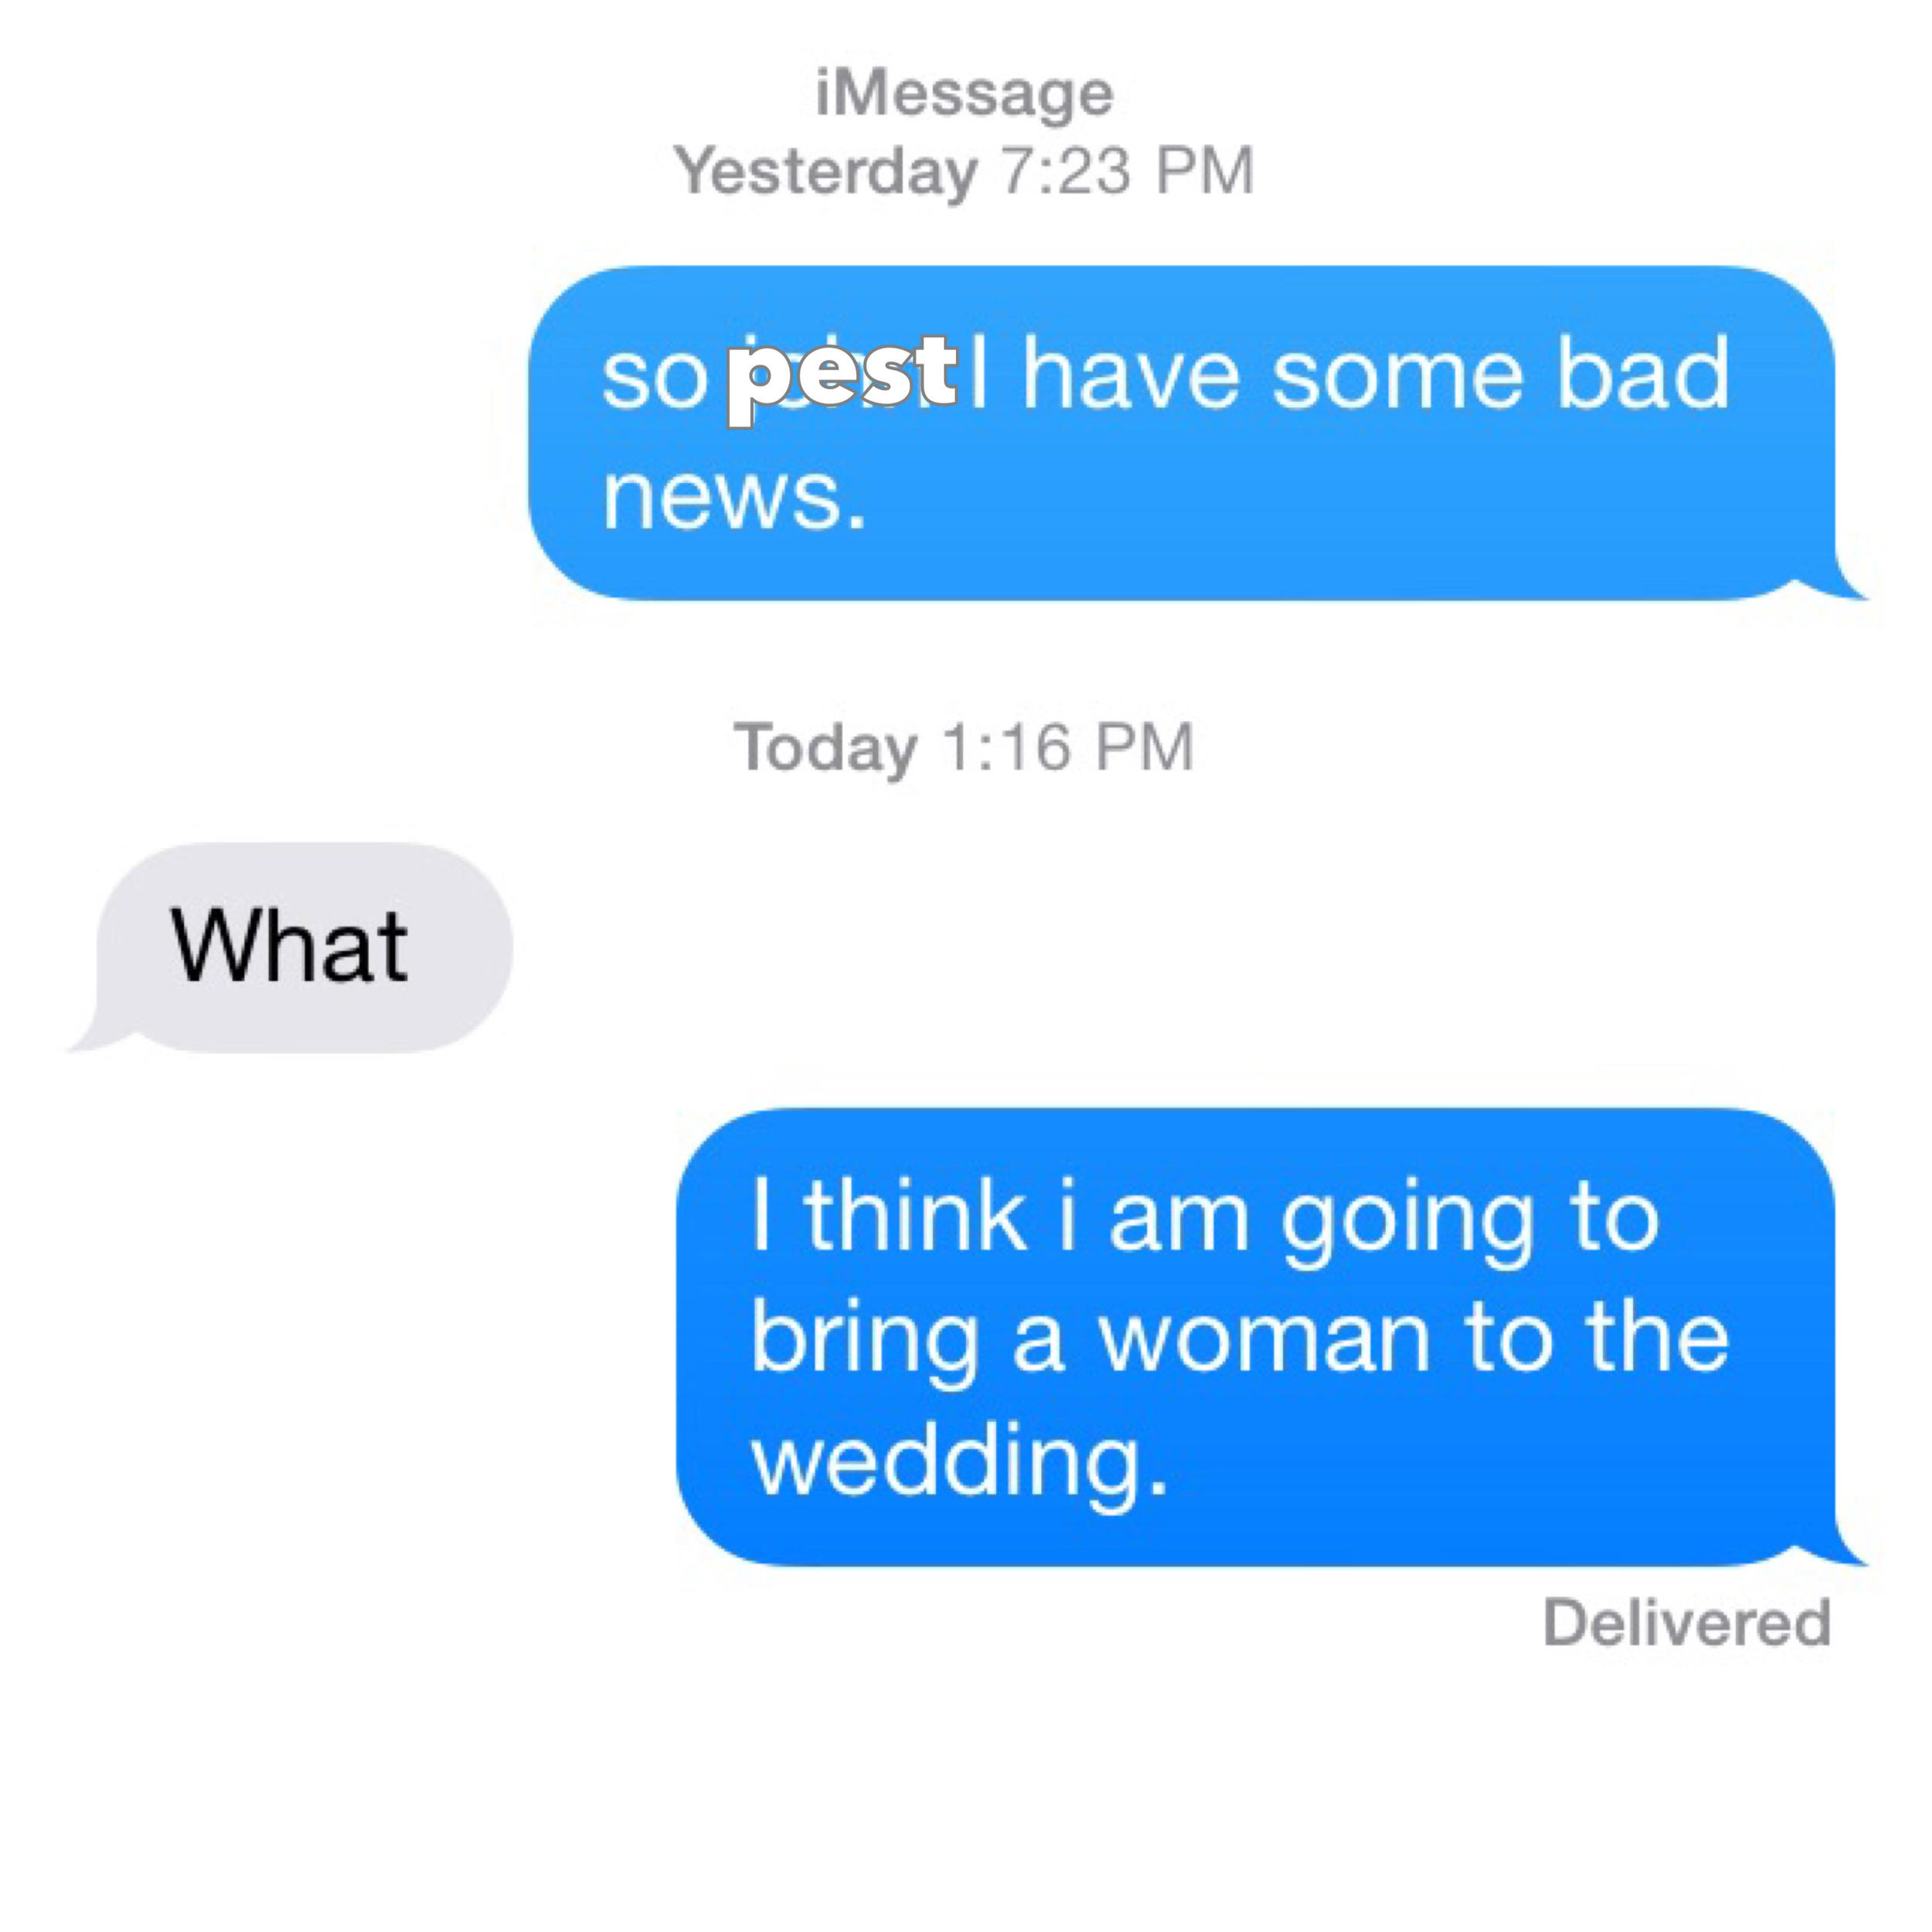 pest final text sep 2015.jpg